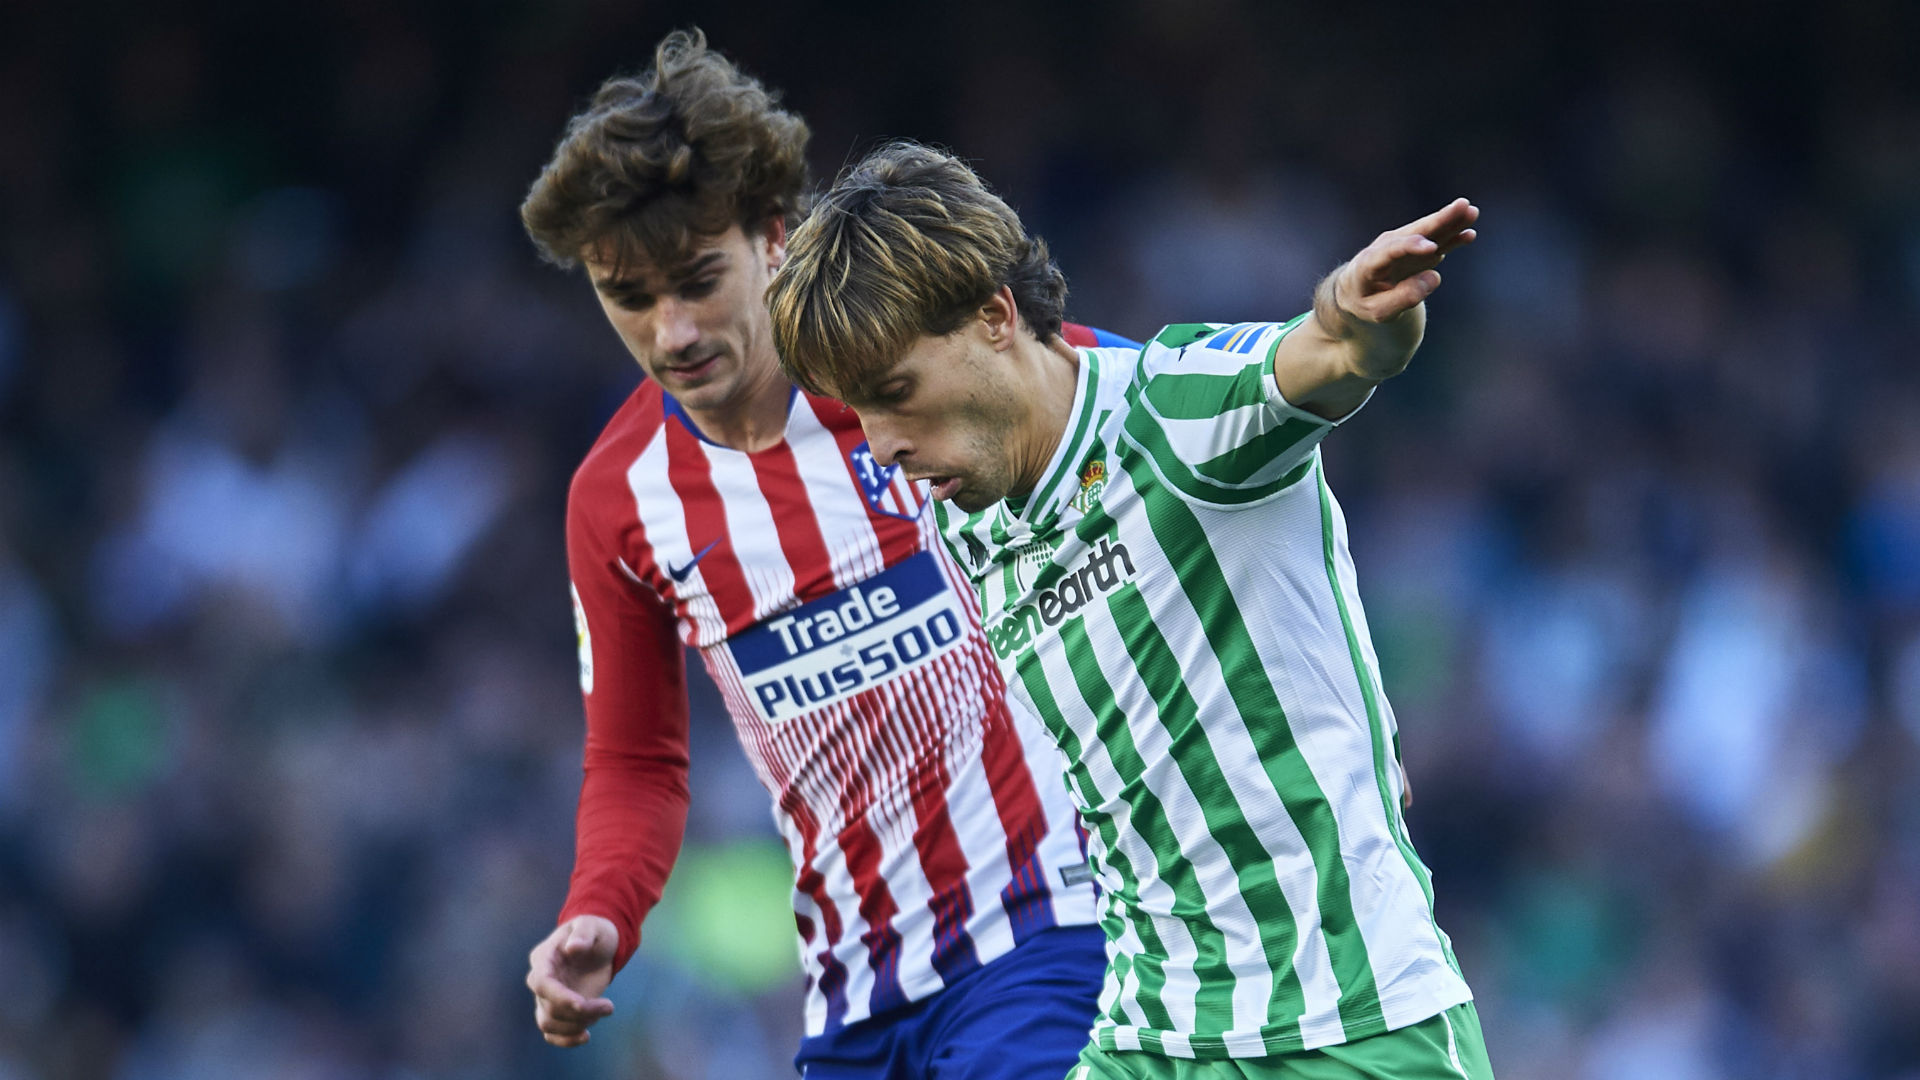 Real Betis 1 Atletico Madrid 0: Canales' penalty dents Atletico's title hopes